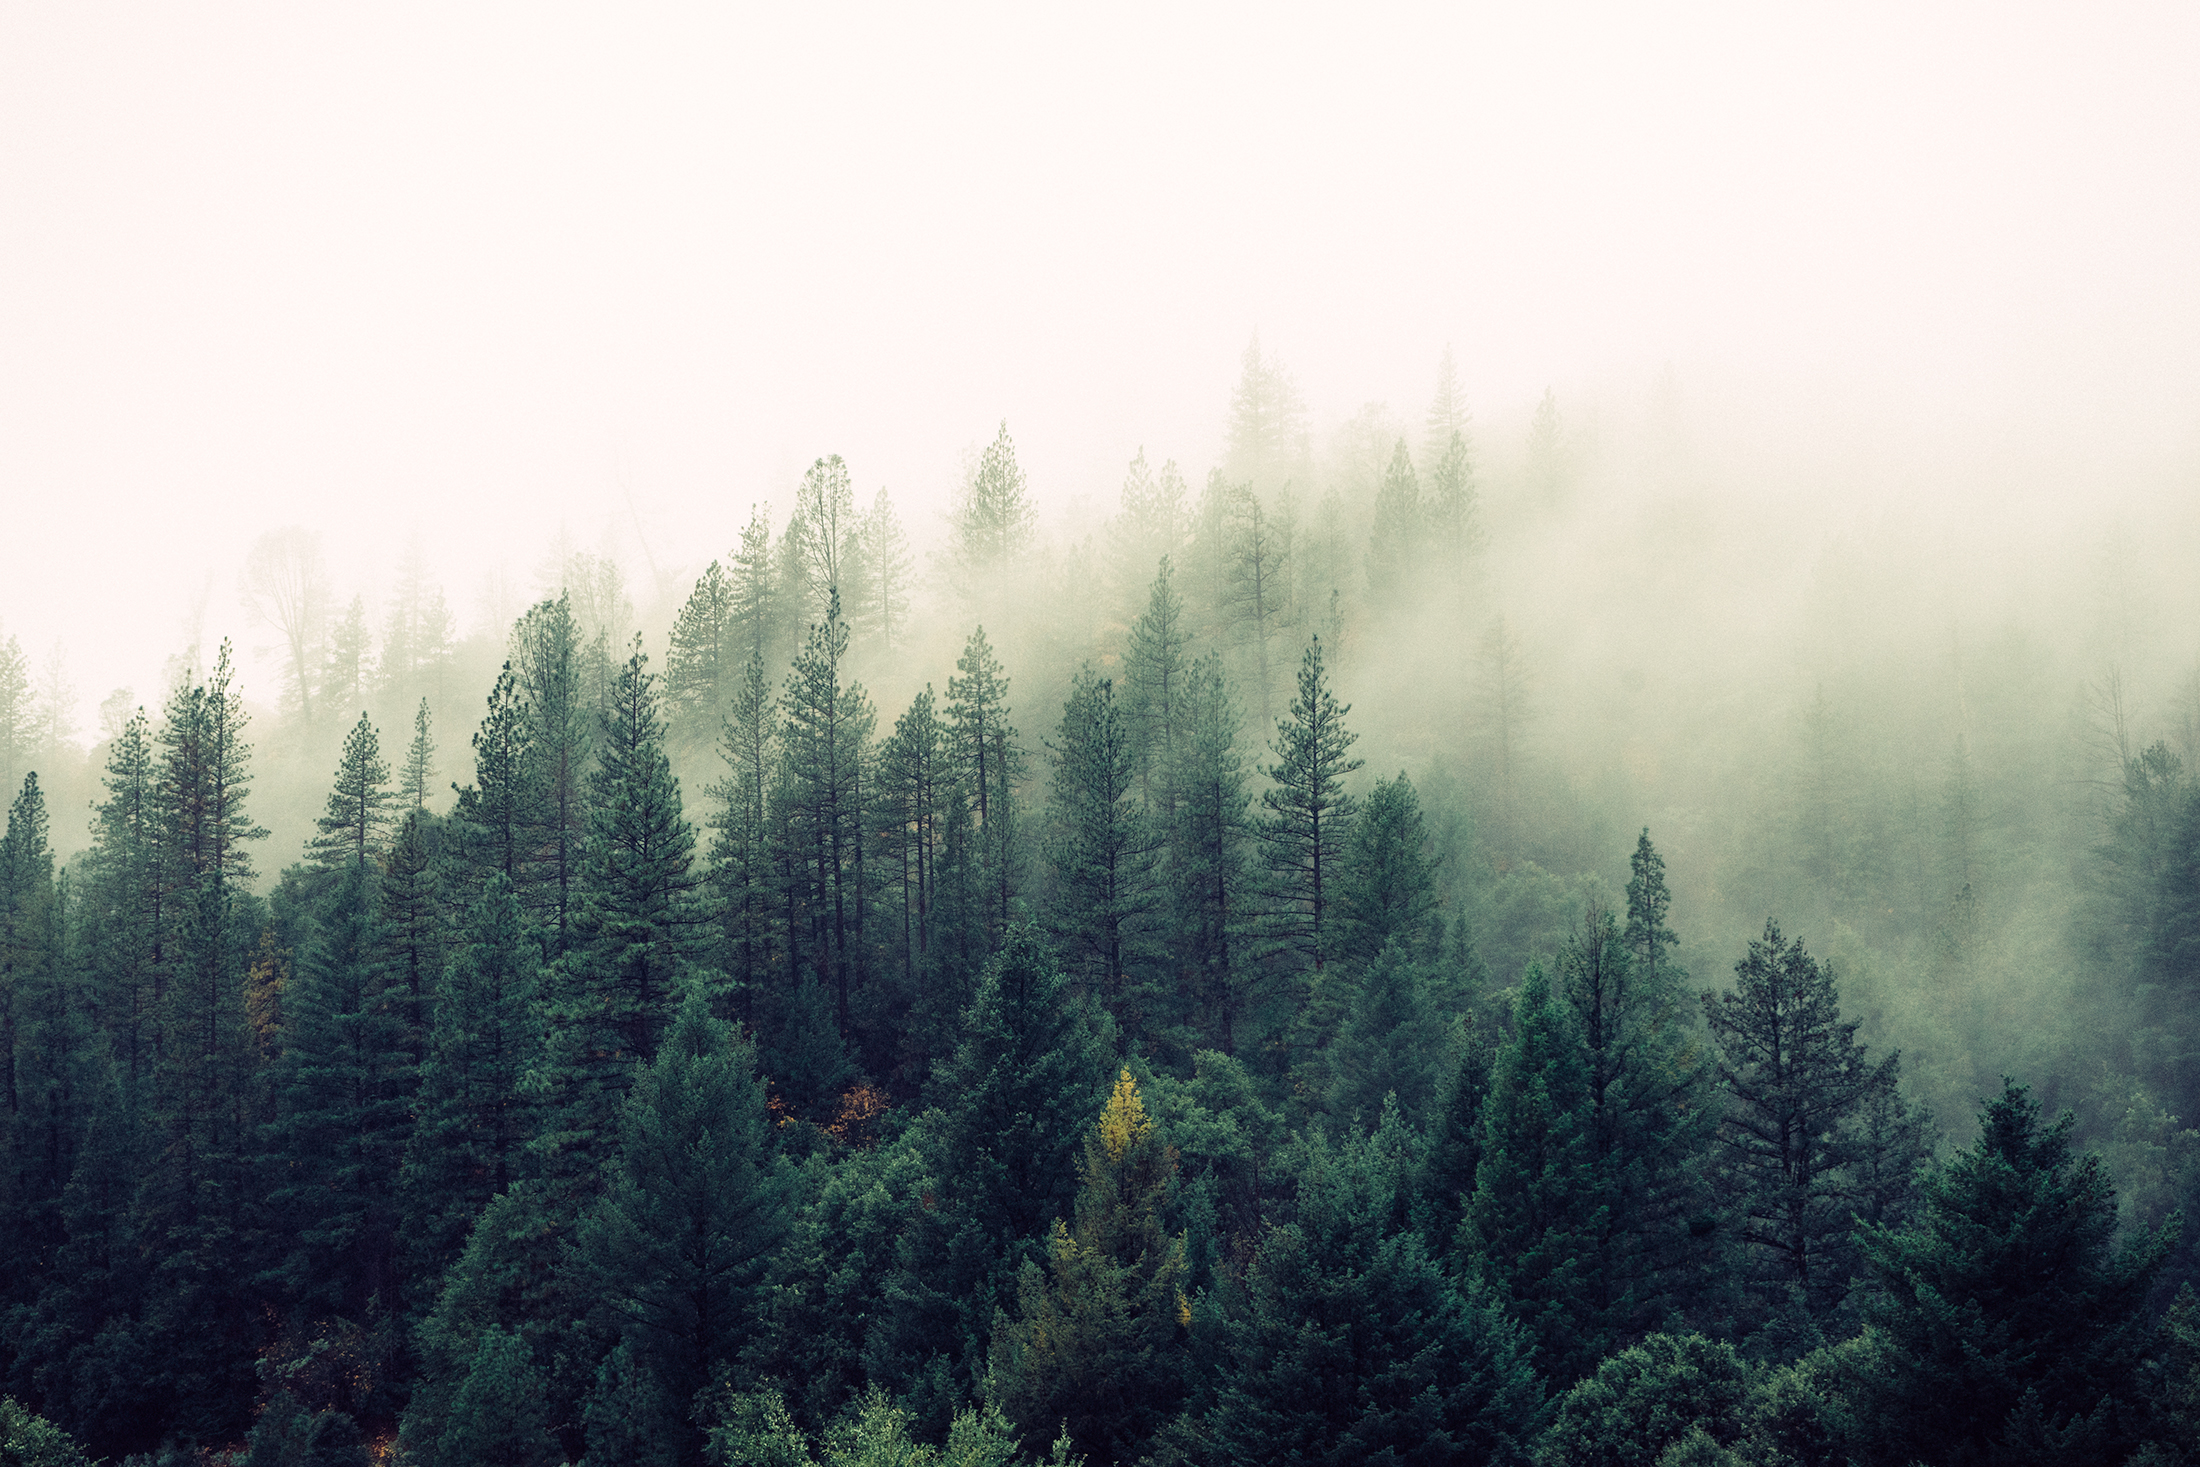 Forest Bathing resources